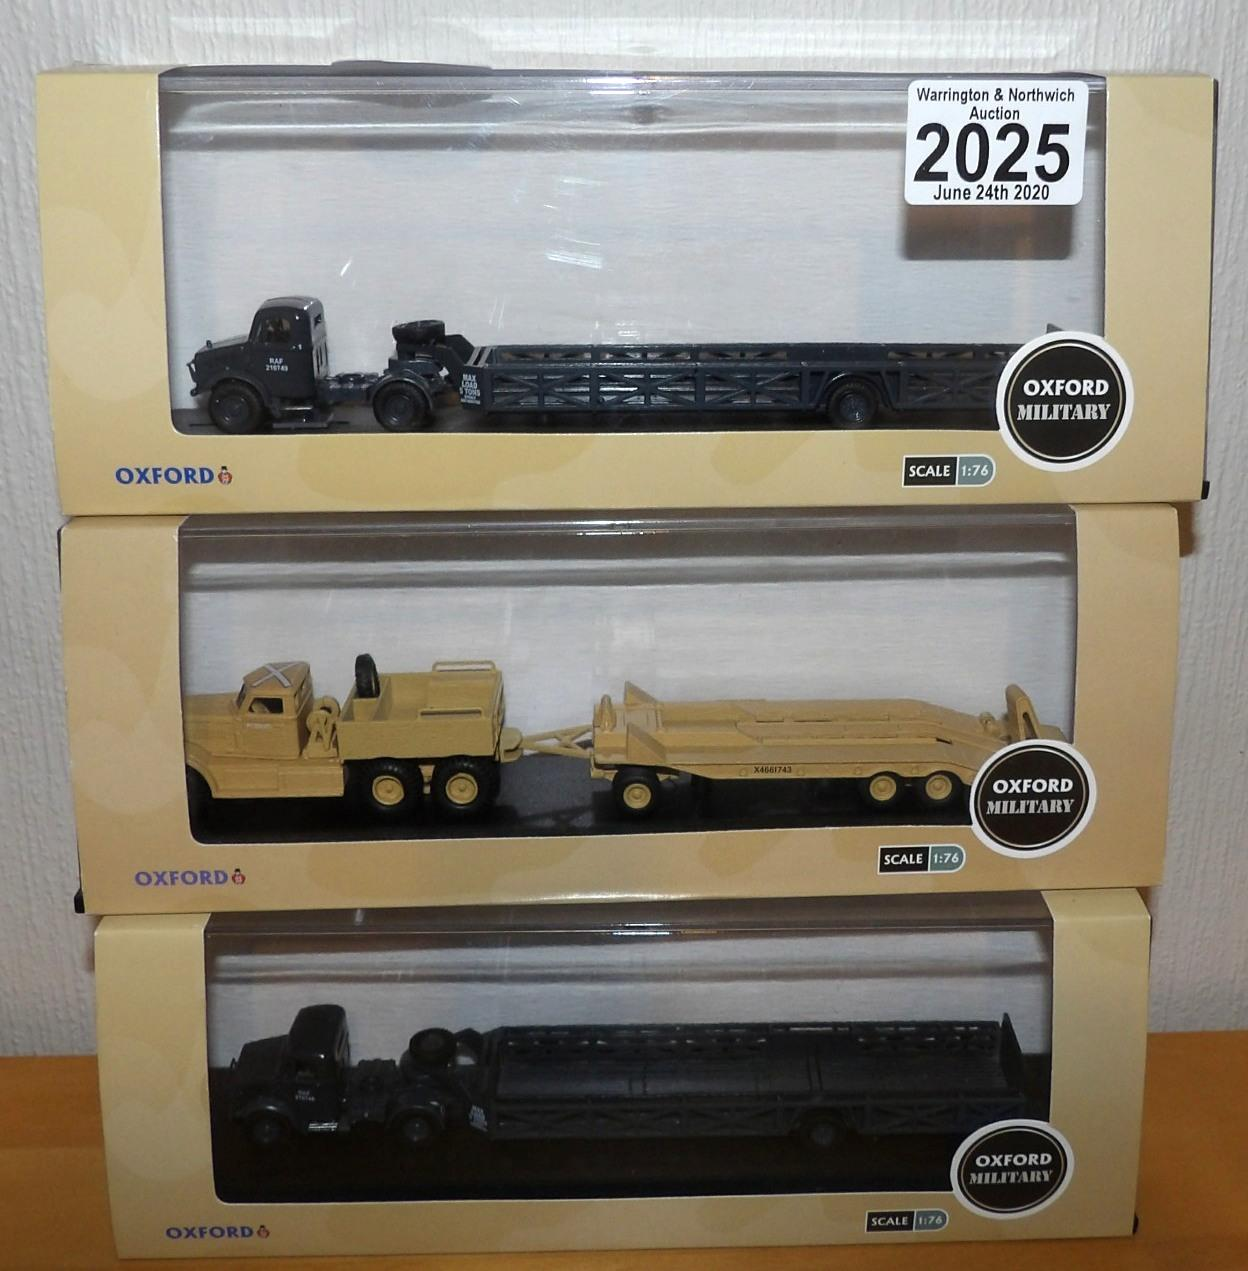 Lot 2025 - Oxford 1.76 Scale x 3 Military Vehicles 2 Bedford RAF Queen Mary and Tank Transporter. P&P Group